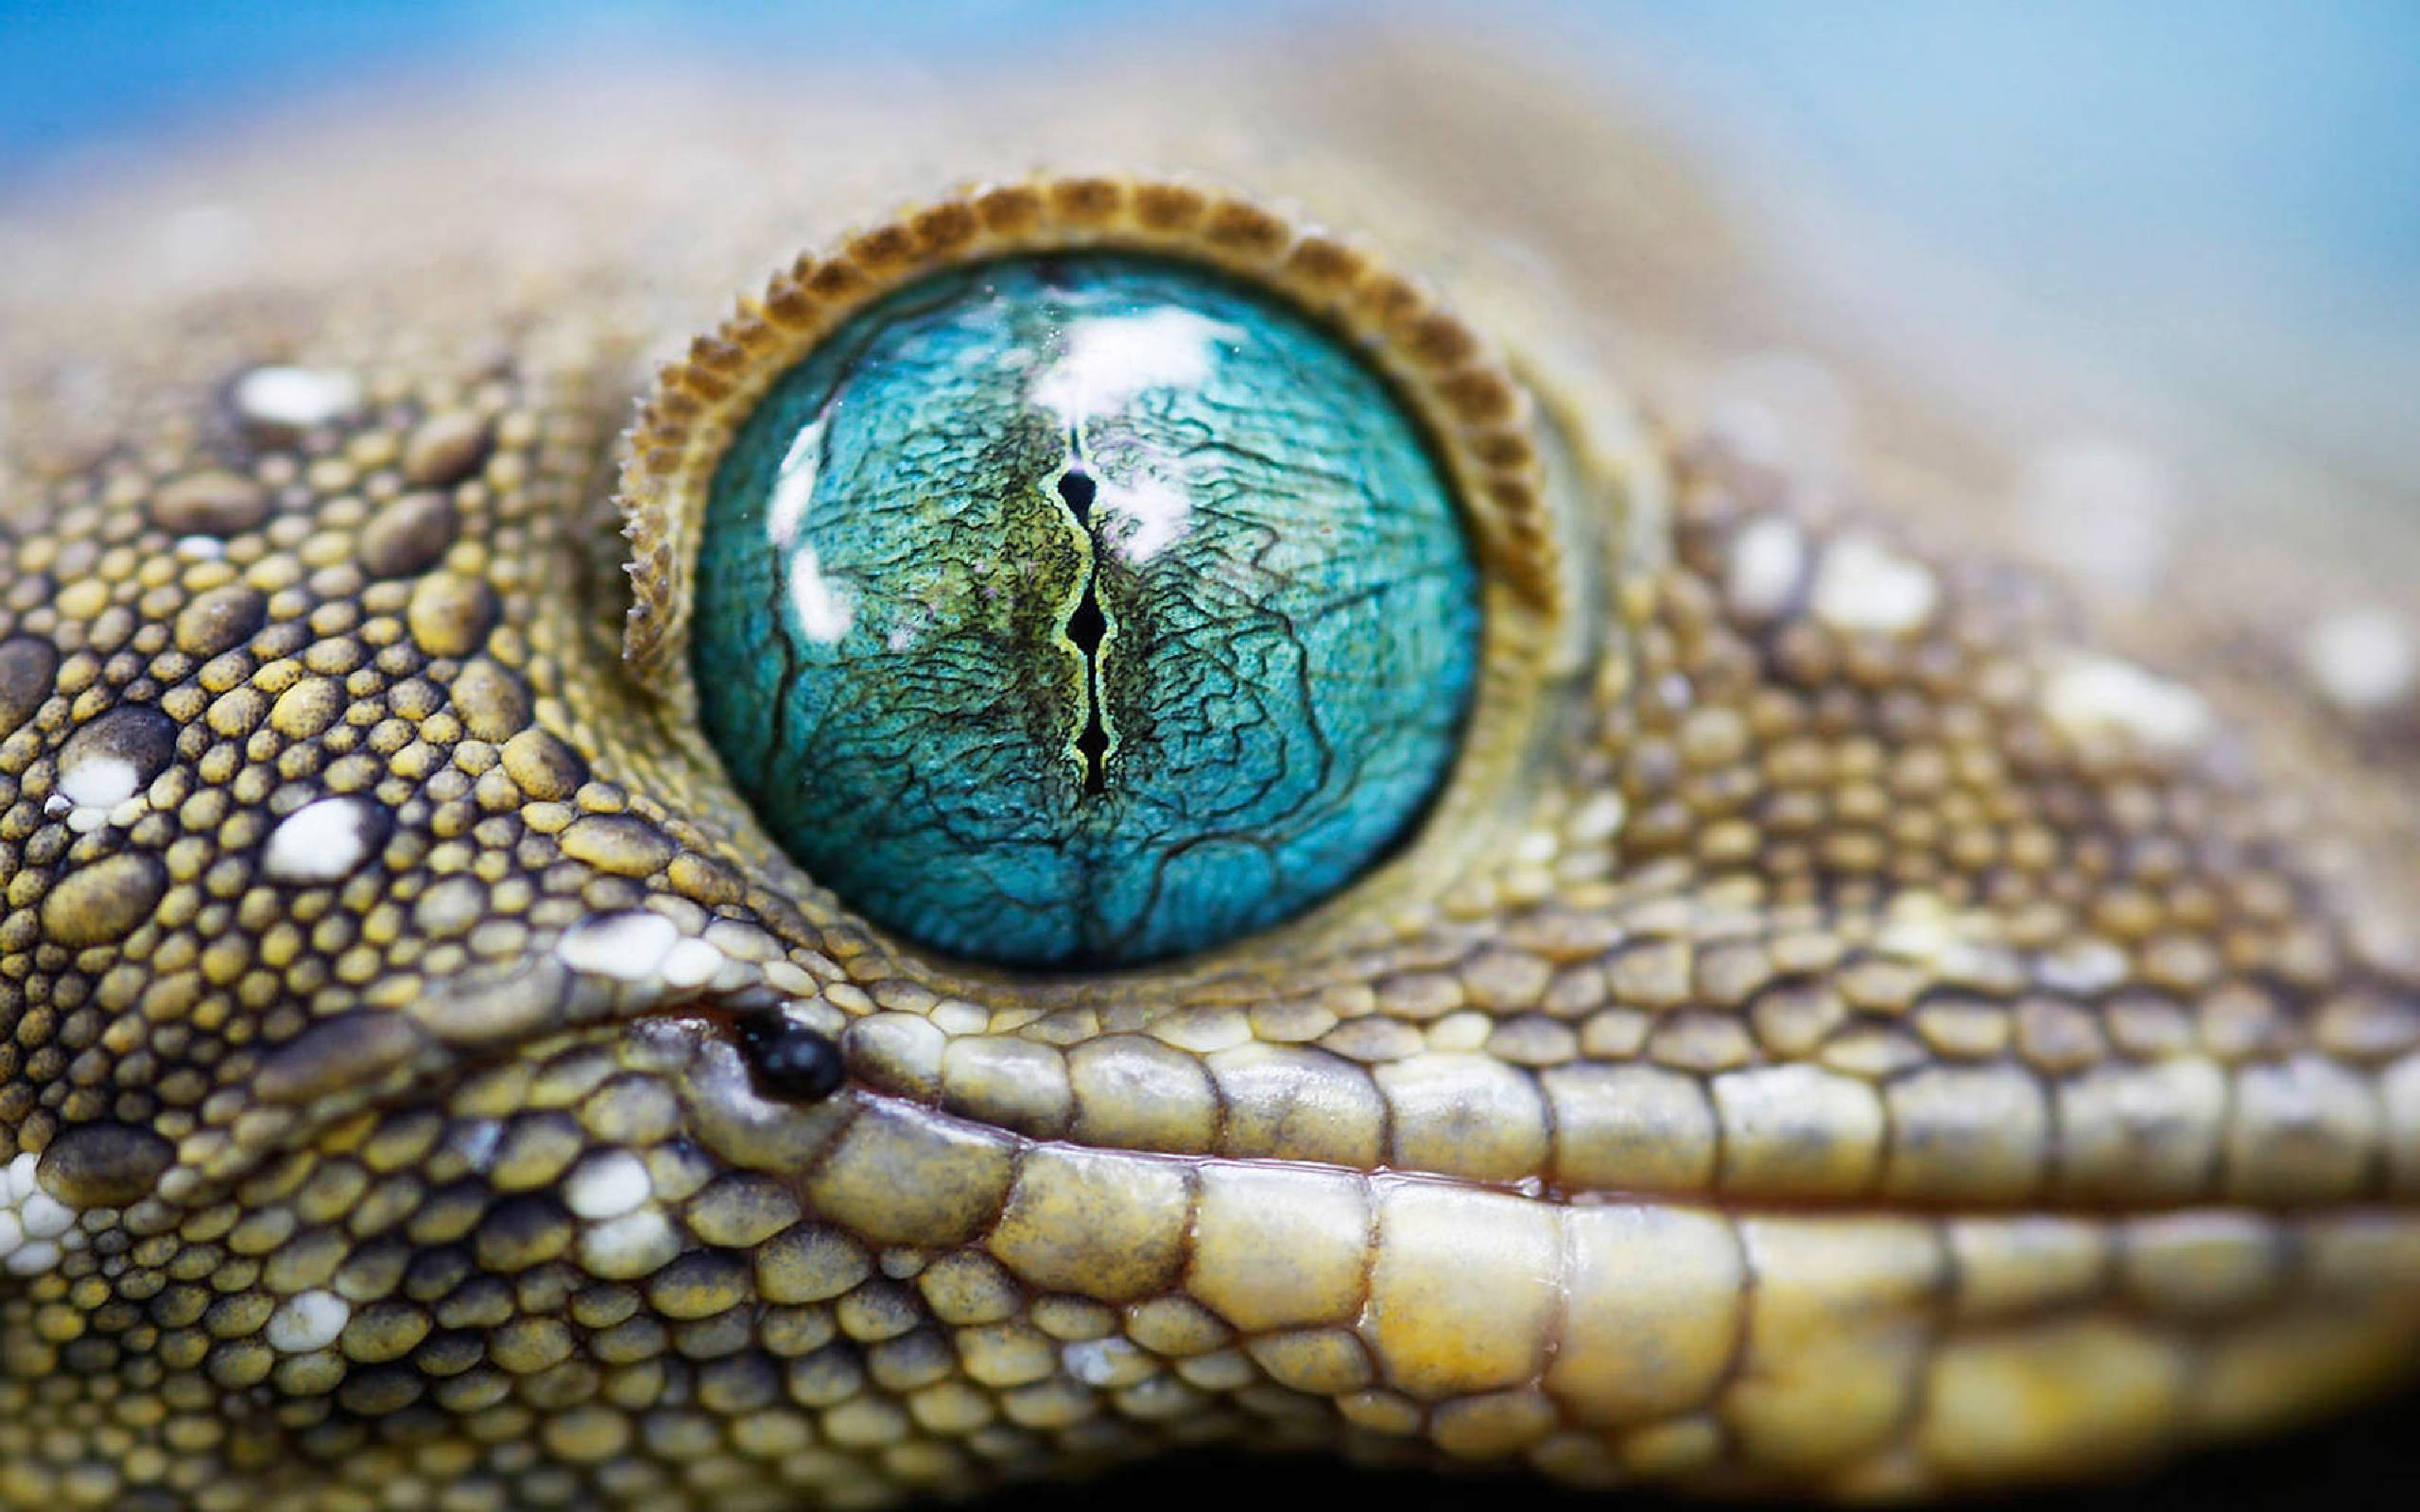 269 Lizard Wallpapers | Lizard Backgrounds Page 6